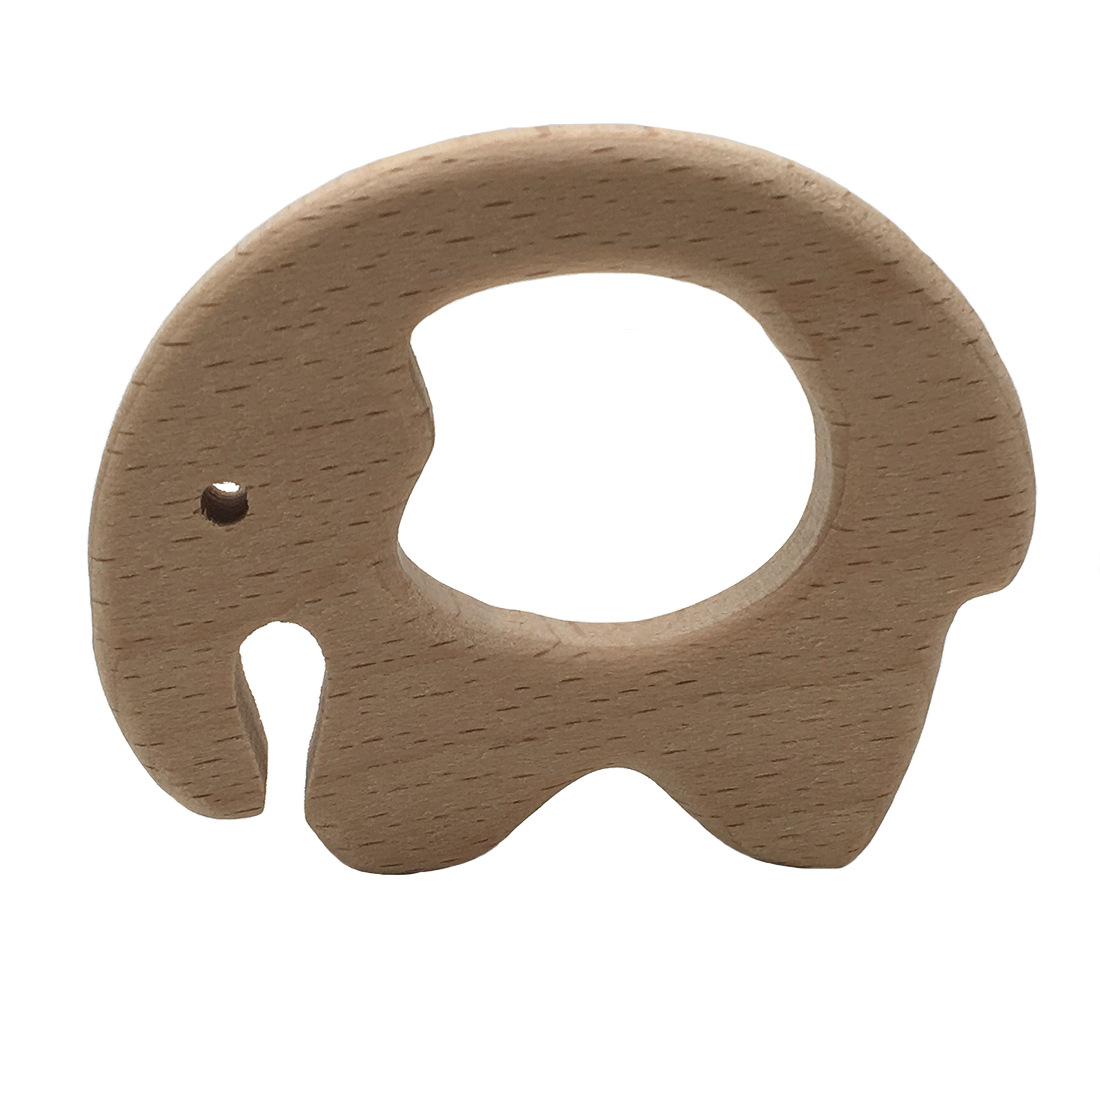 unfinished beech wooden teether elephant Teether Clip pacifier 10pcs elephant charm nursing necklace